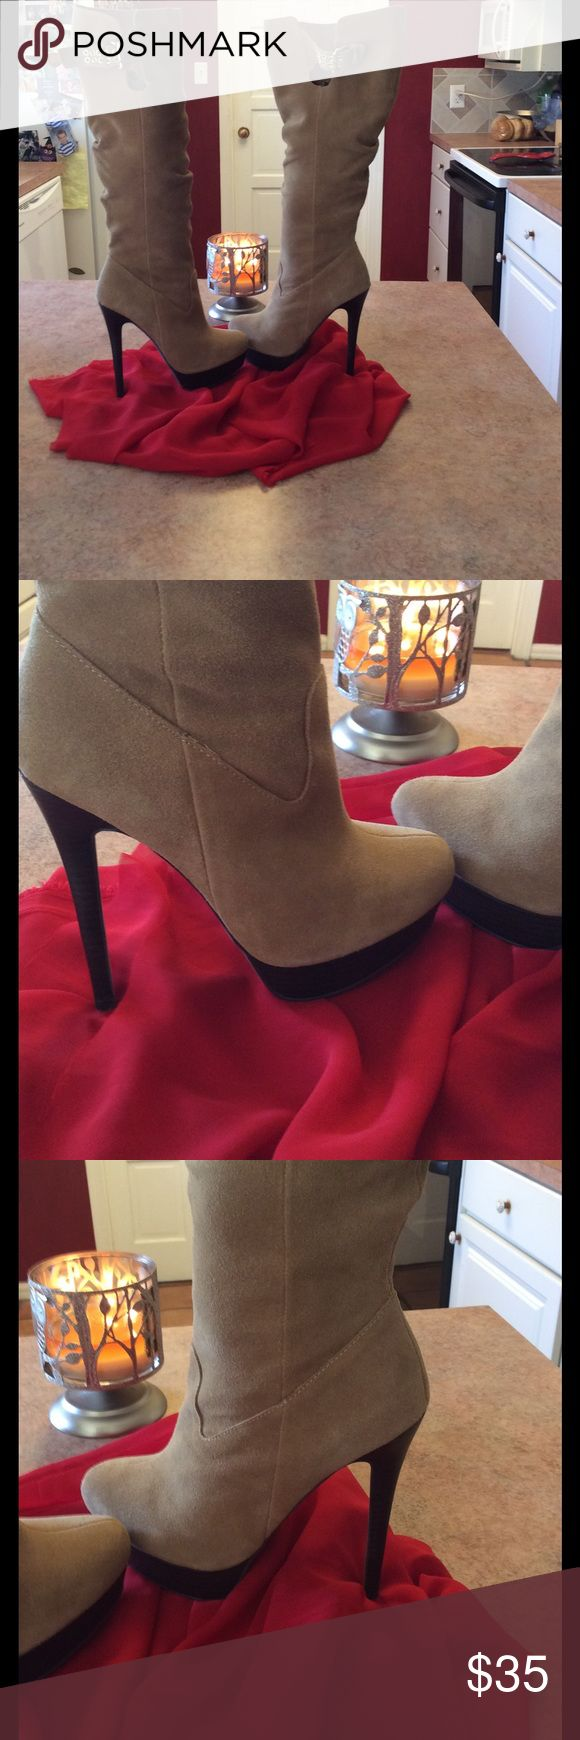 Colin Stuart knee high heeled Suede  boots 👢 Pretty camel 🐫 tan Suede heeled boots in good used condition - a few small spots on Suede as shown in photos may clean off easily with a Suede cleaner Colin Stuart Shoes Heeled Boots